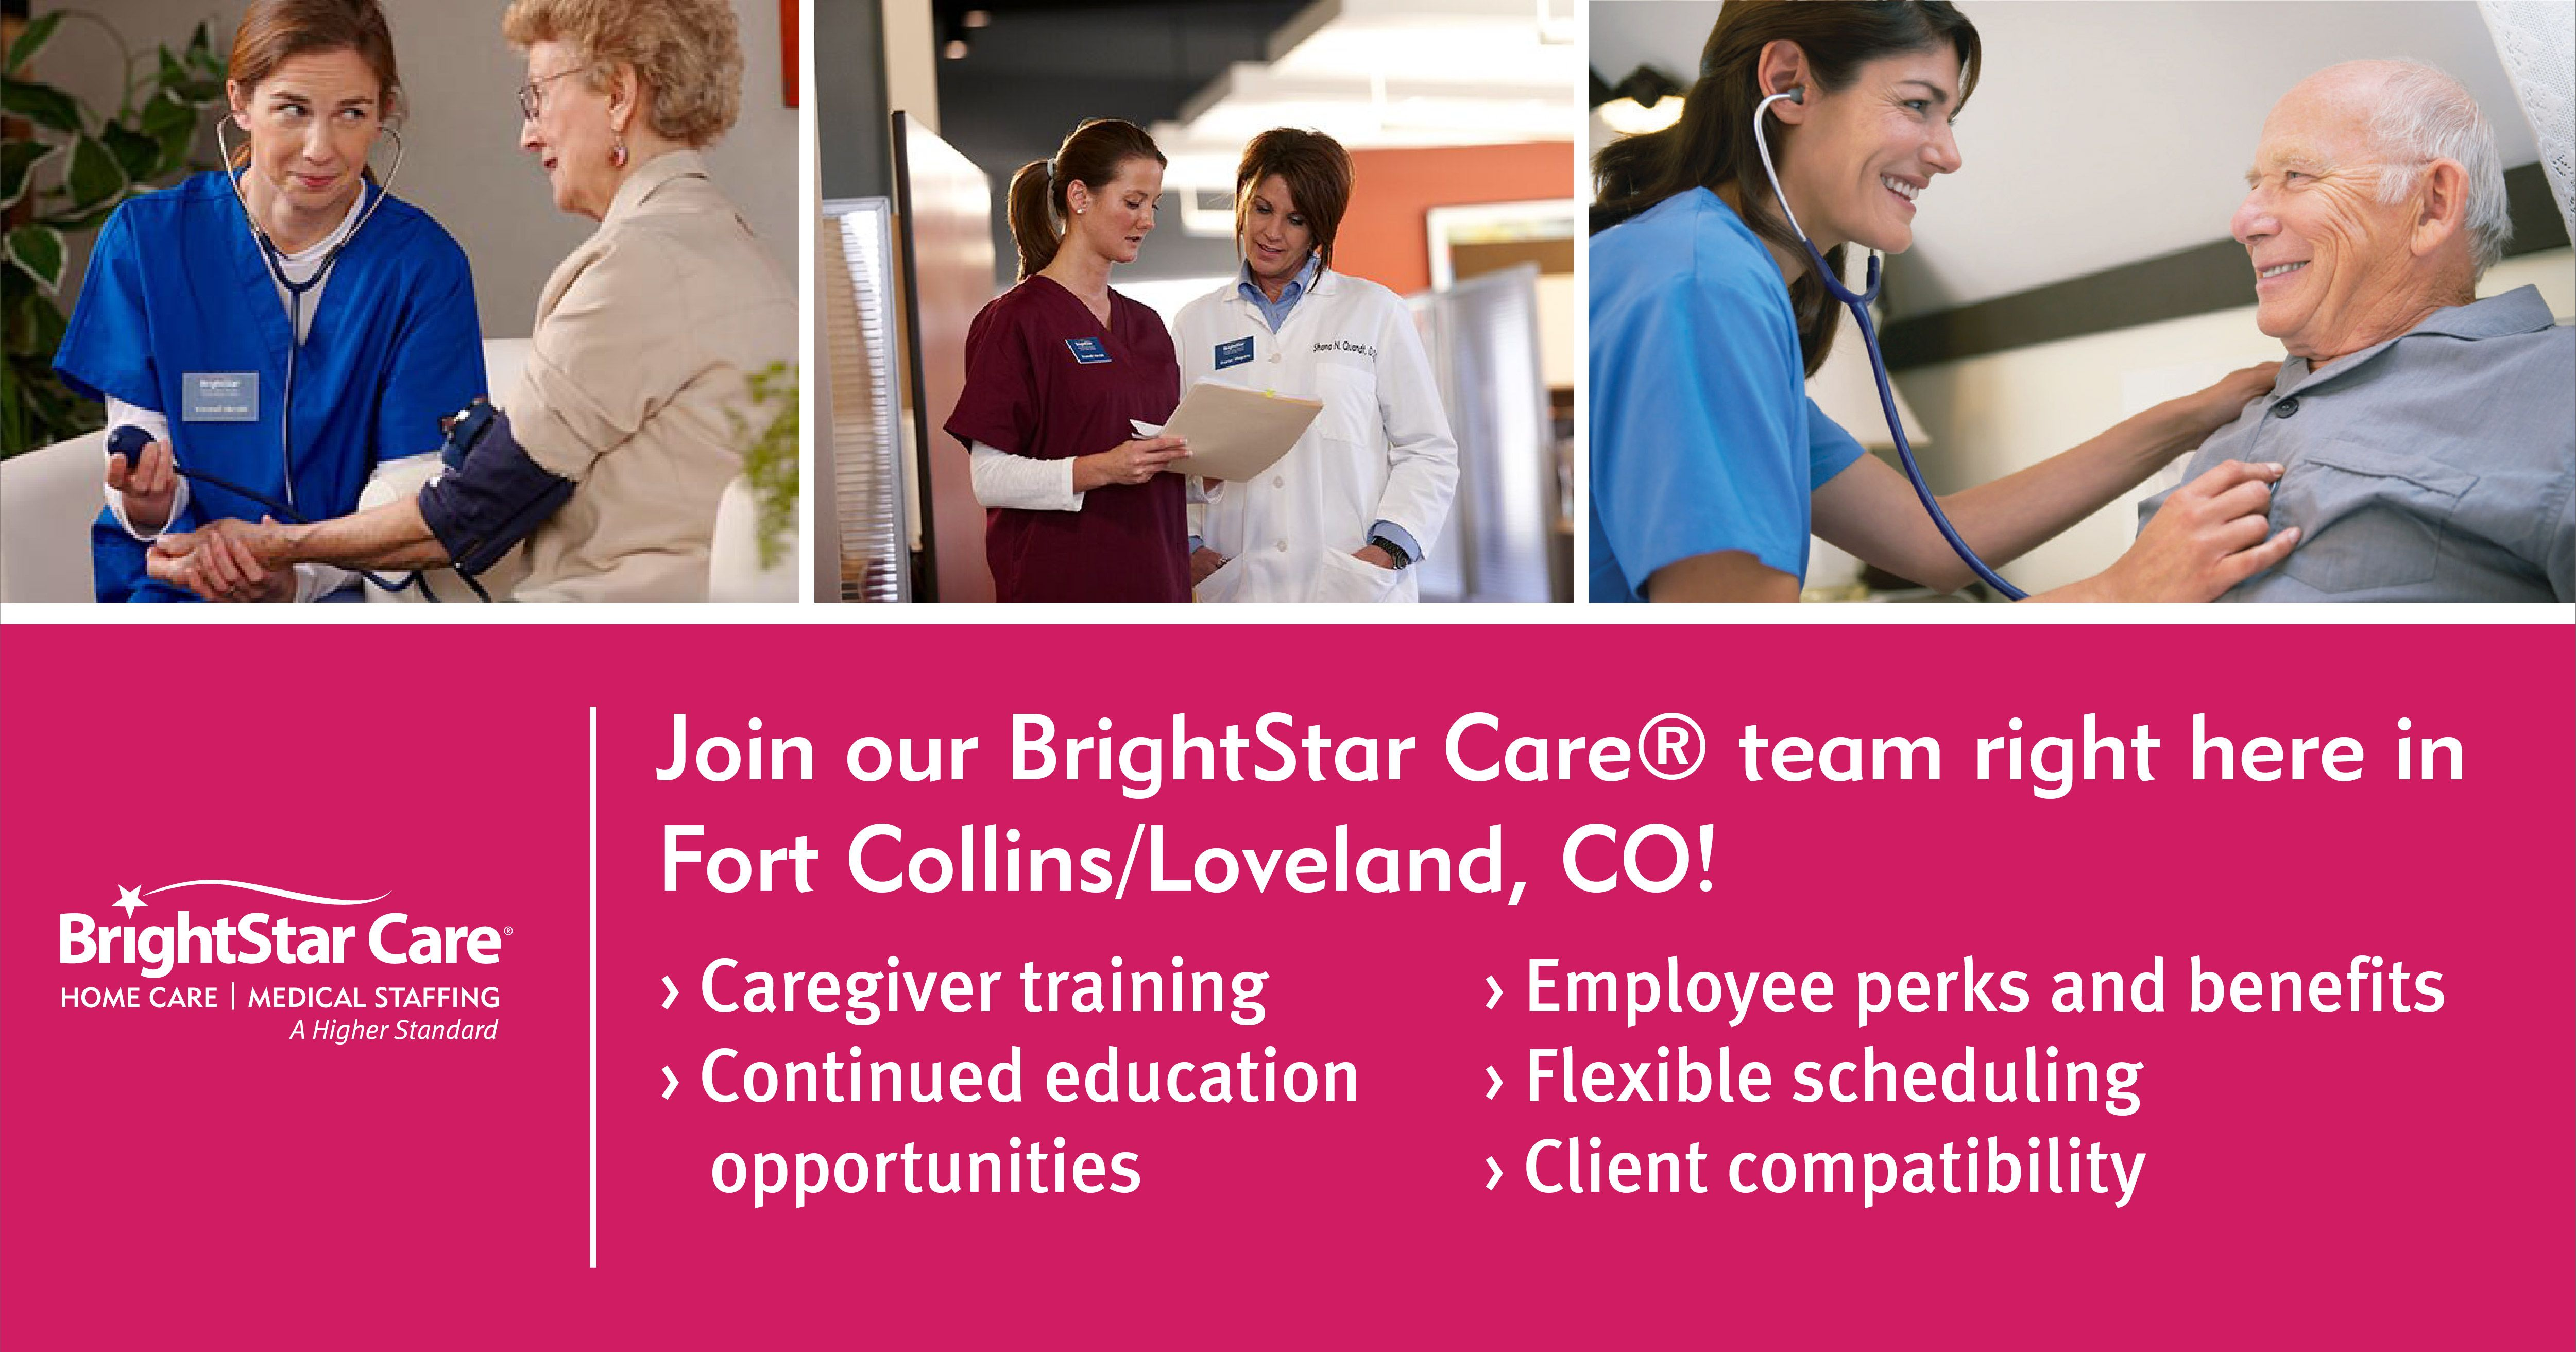 At brightstar care were serious about cultivating a